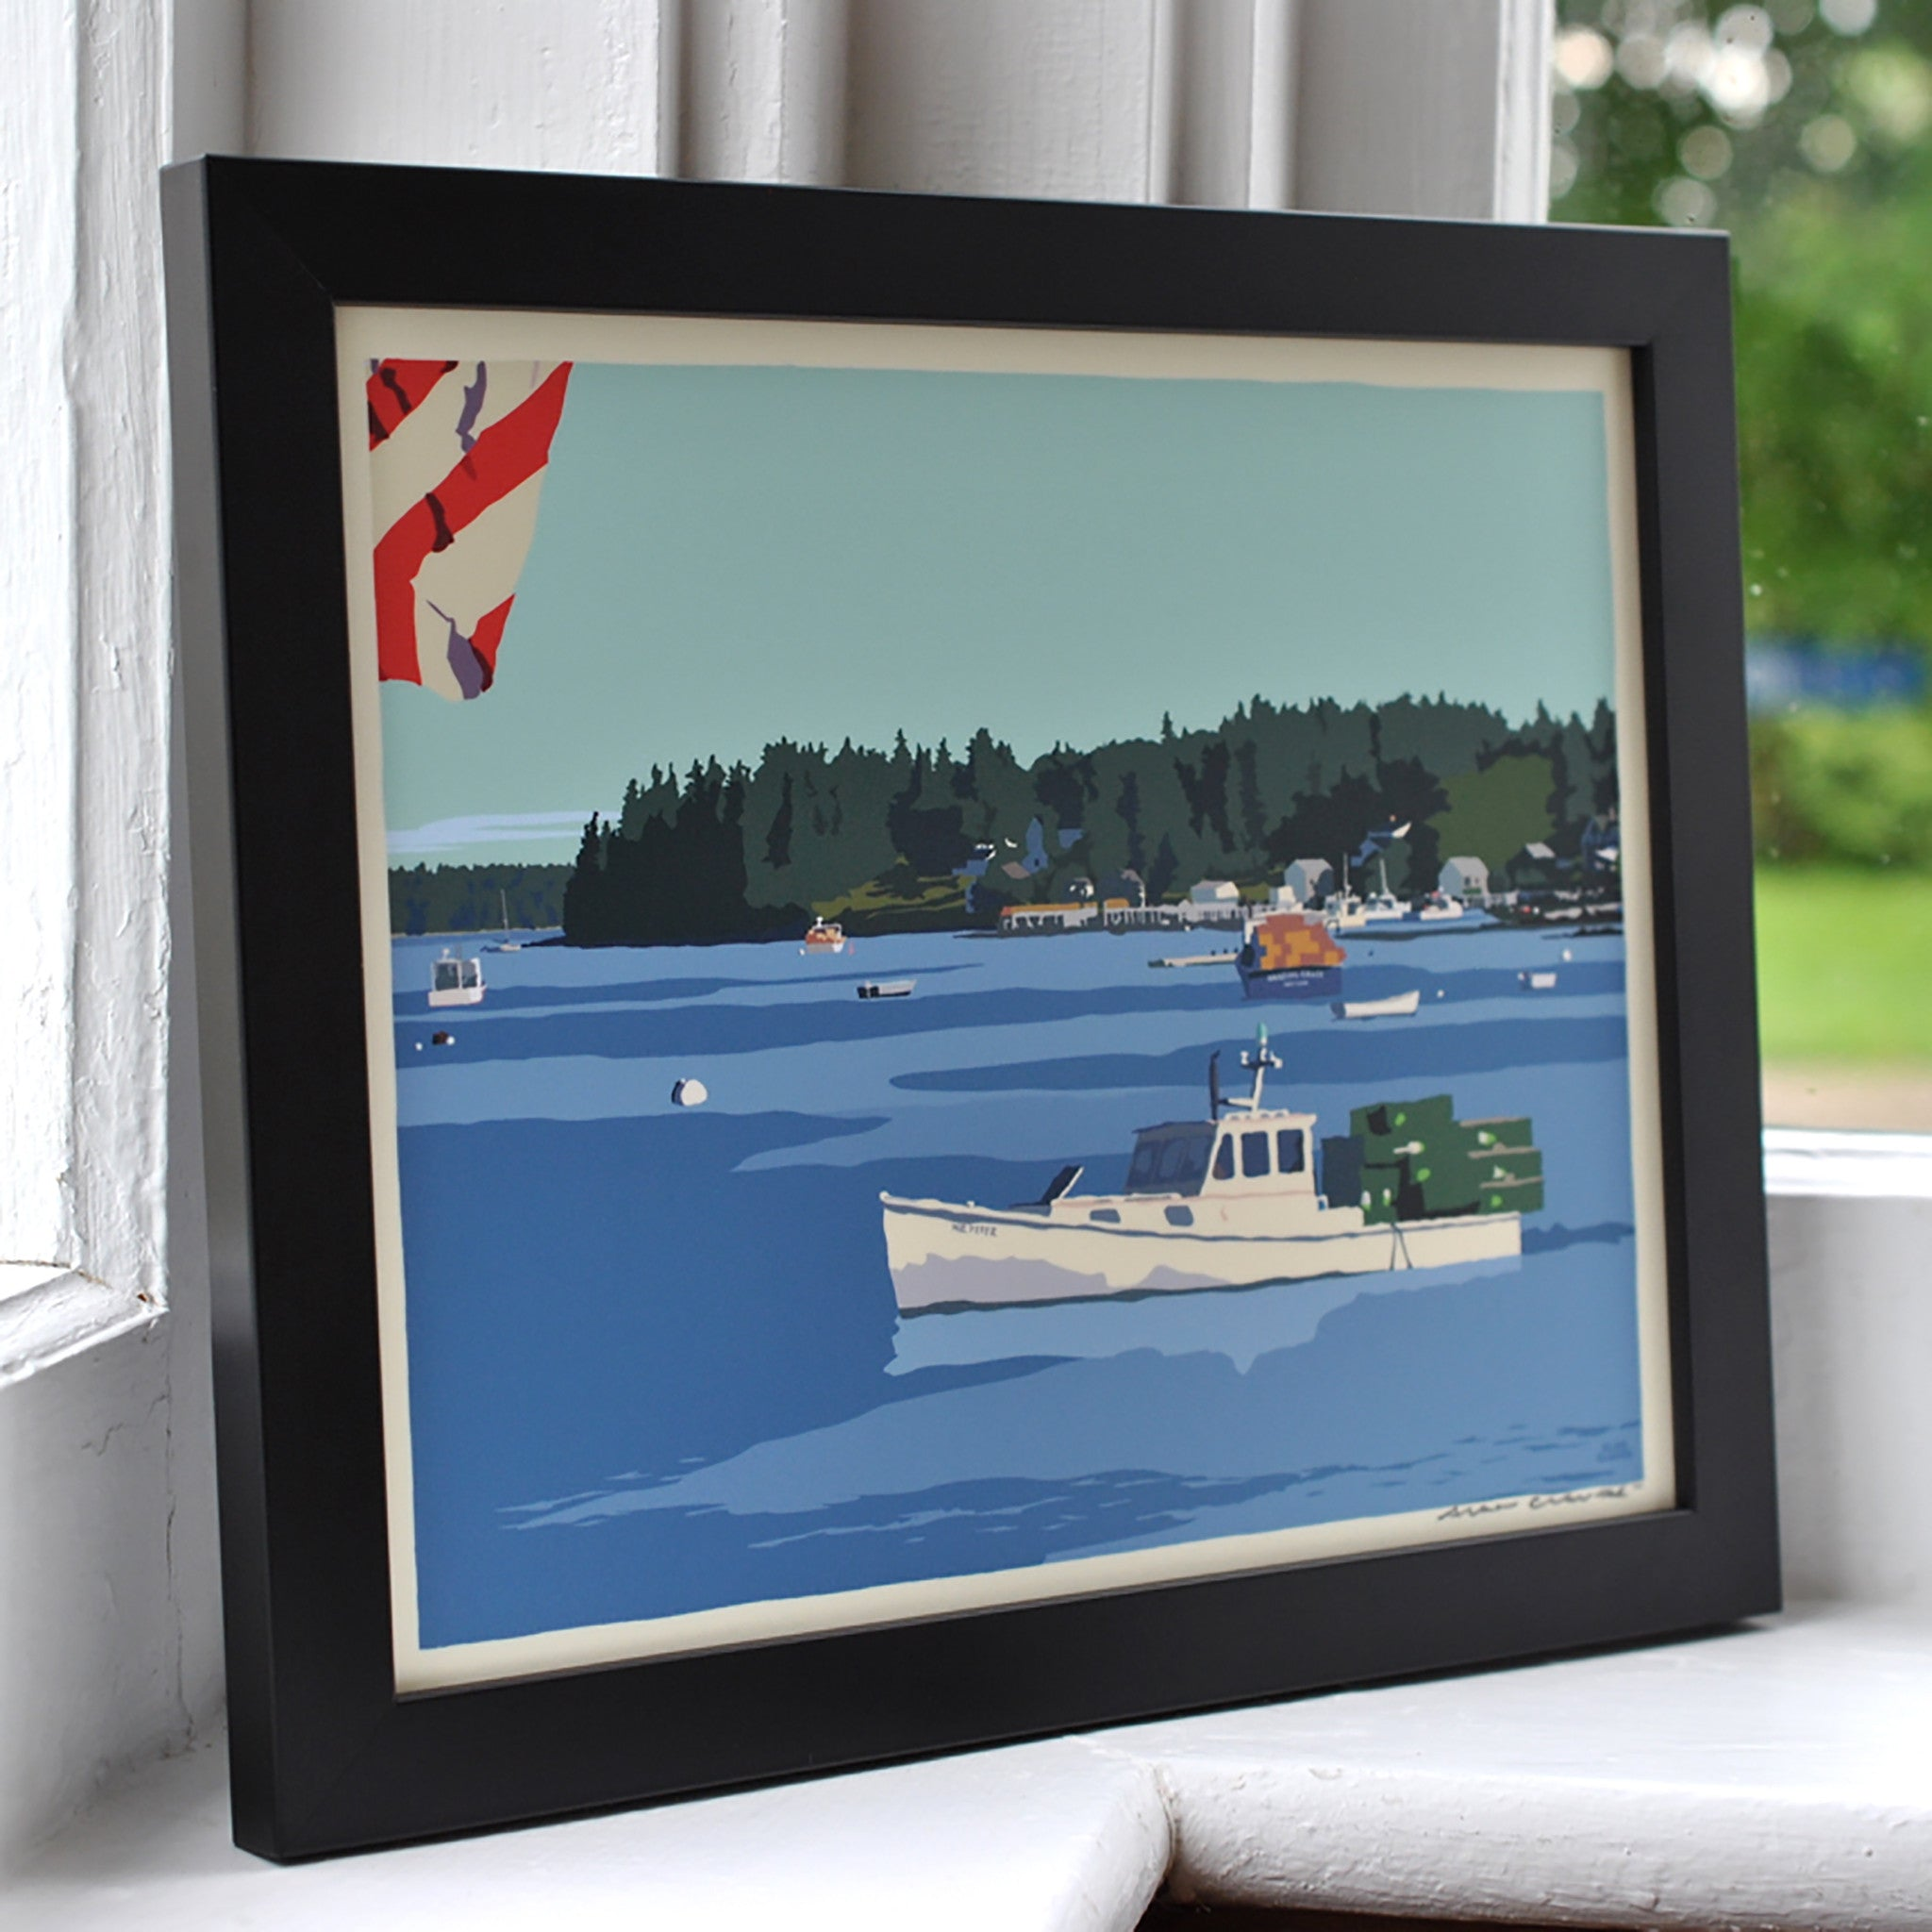 "Port Clyde Lobster Boat Art Print 8"" x 10"" Framed Wall Poster - Maine"